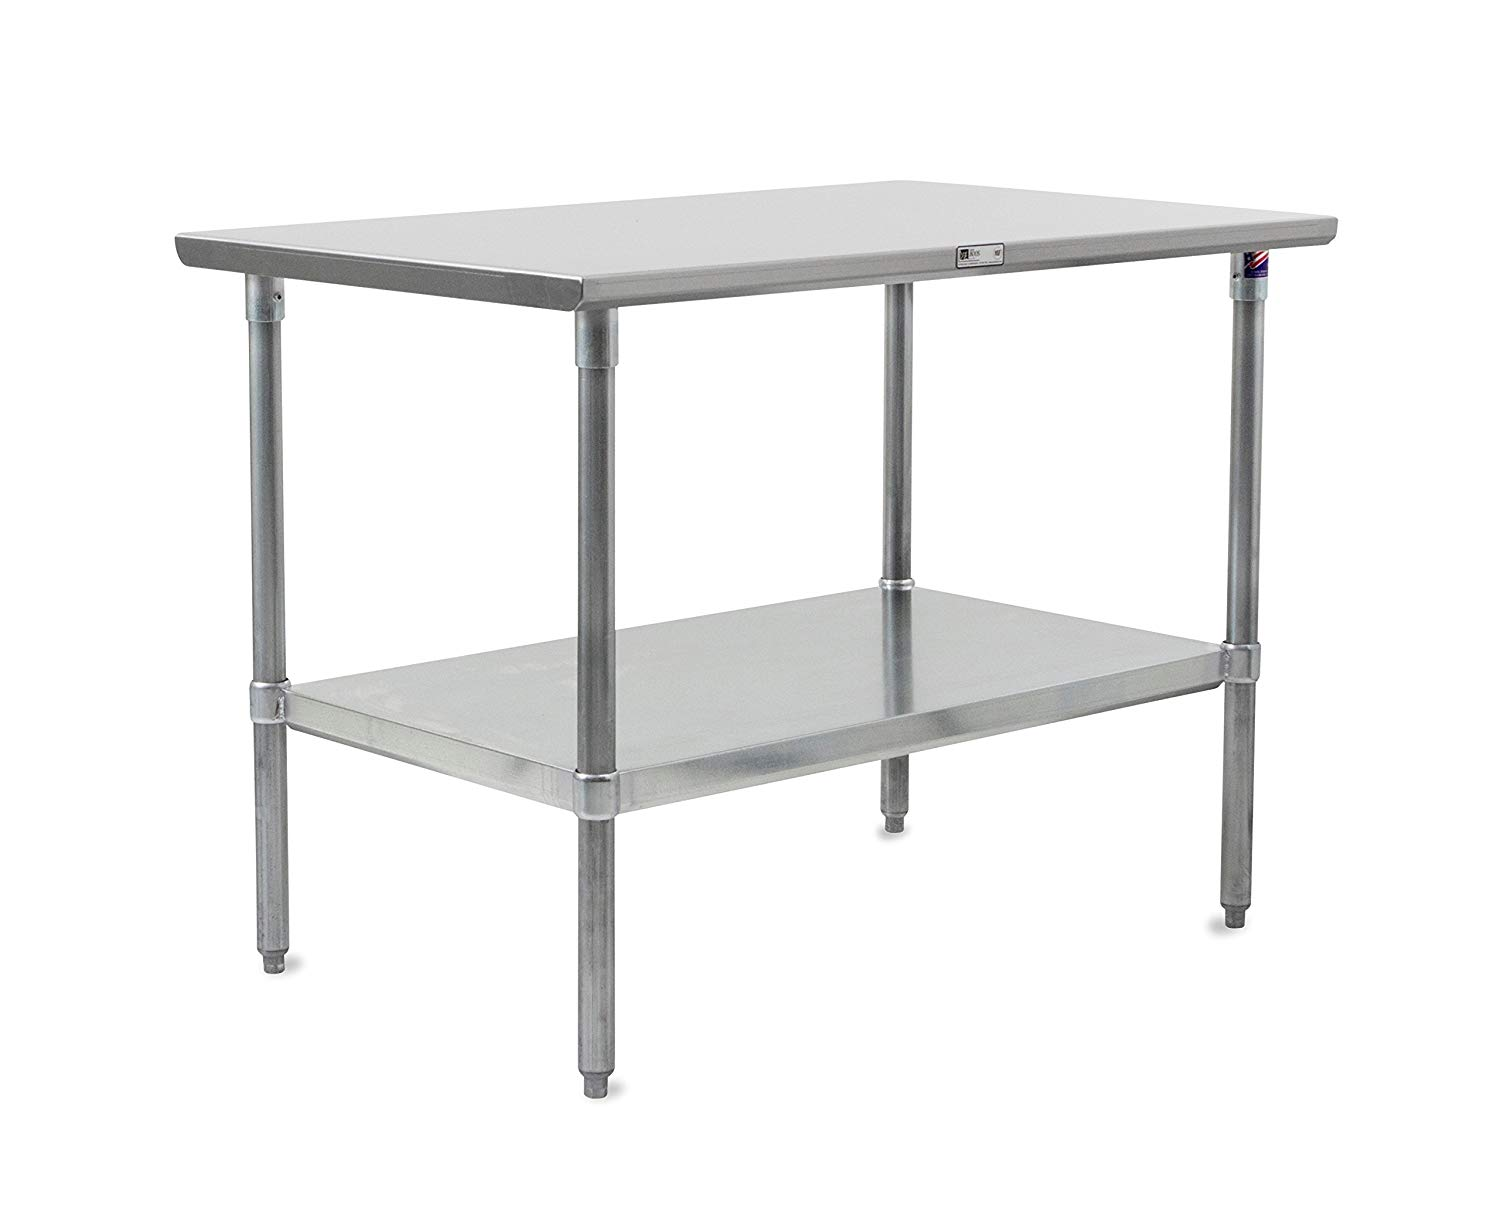 "John Boos Stallion ST6-3672GSK Stainless Steel Flat Top Work Table with Adjustable Glavanized Lower Shelf and Legs, 72"" Length x 36"" Width"